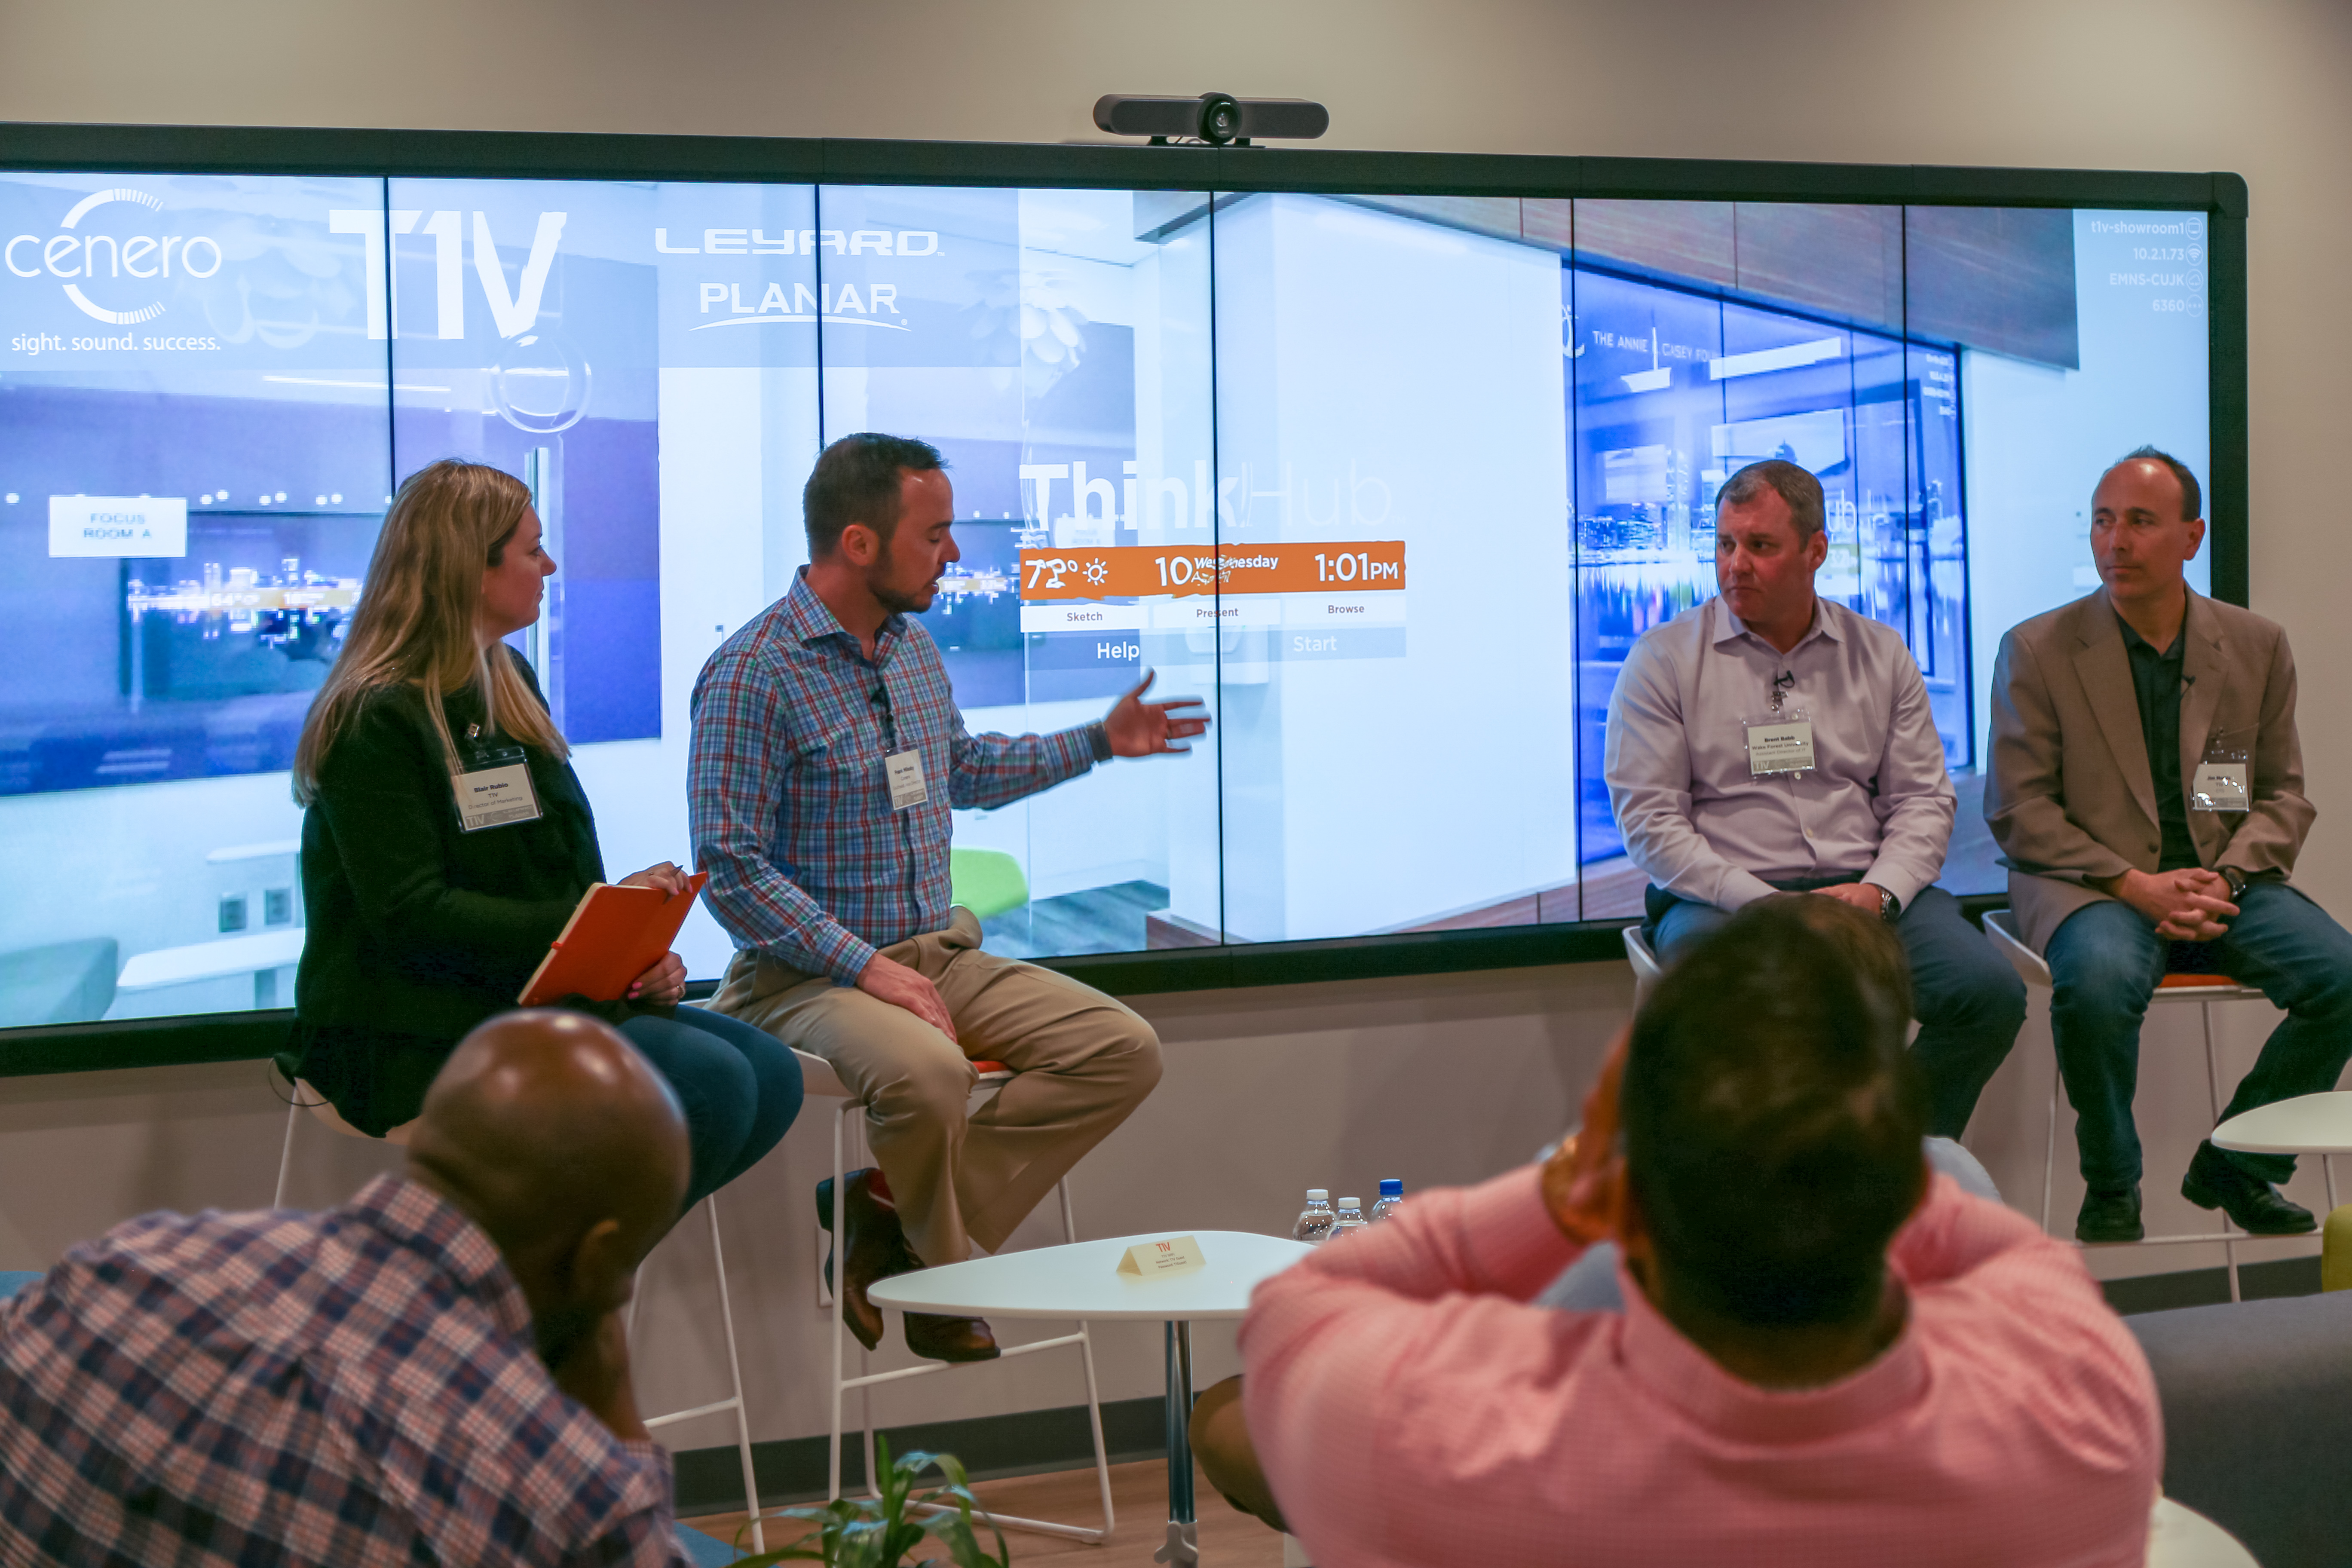 T1V_Cenero_Planar_Wake_Forest_University_Panel_Discussion_Challenges_and_Trends_in_Collaborative_Spaces_2019 (1)